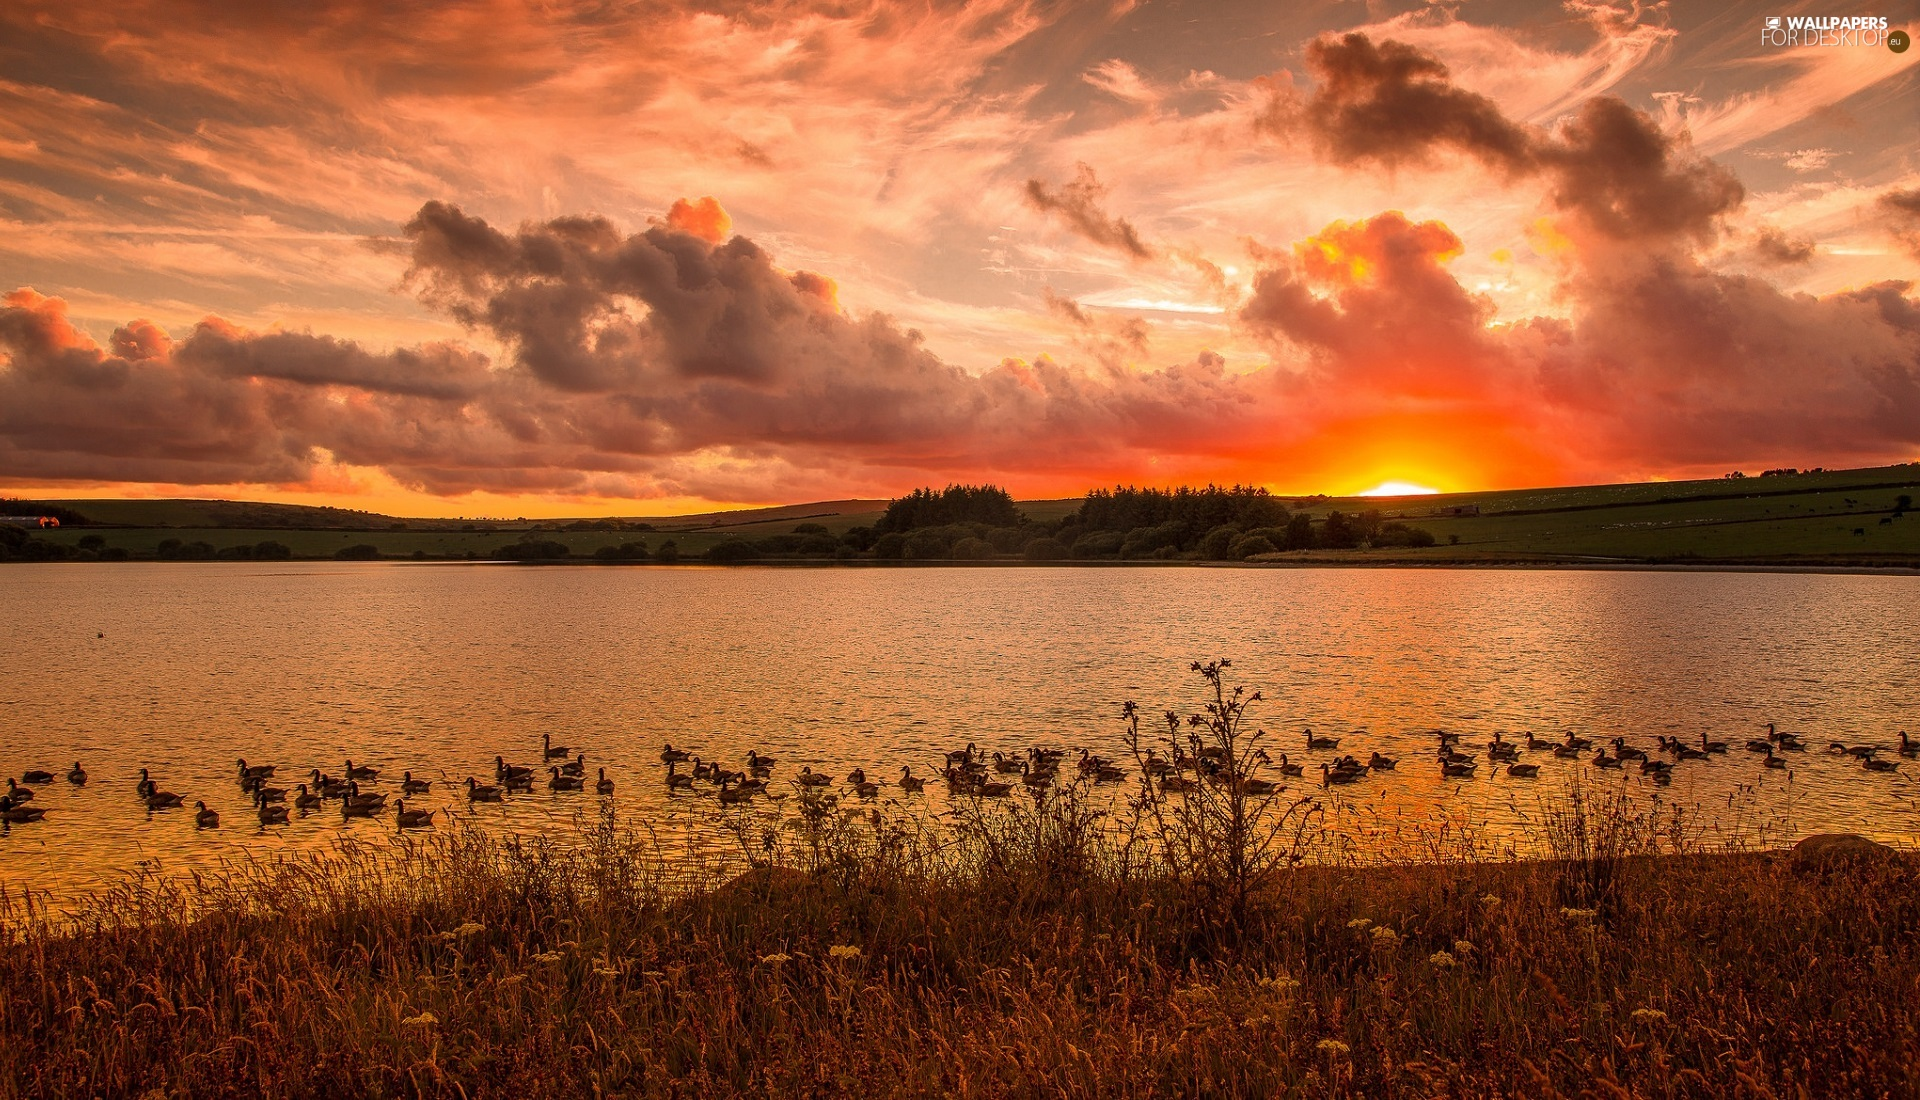 Great Sunsets, ducks, clouds, lake